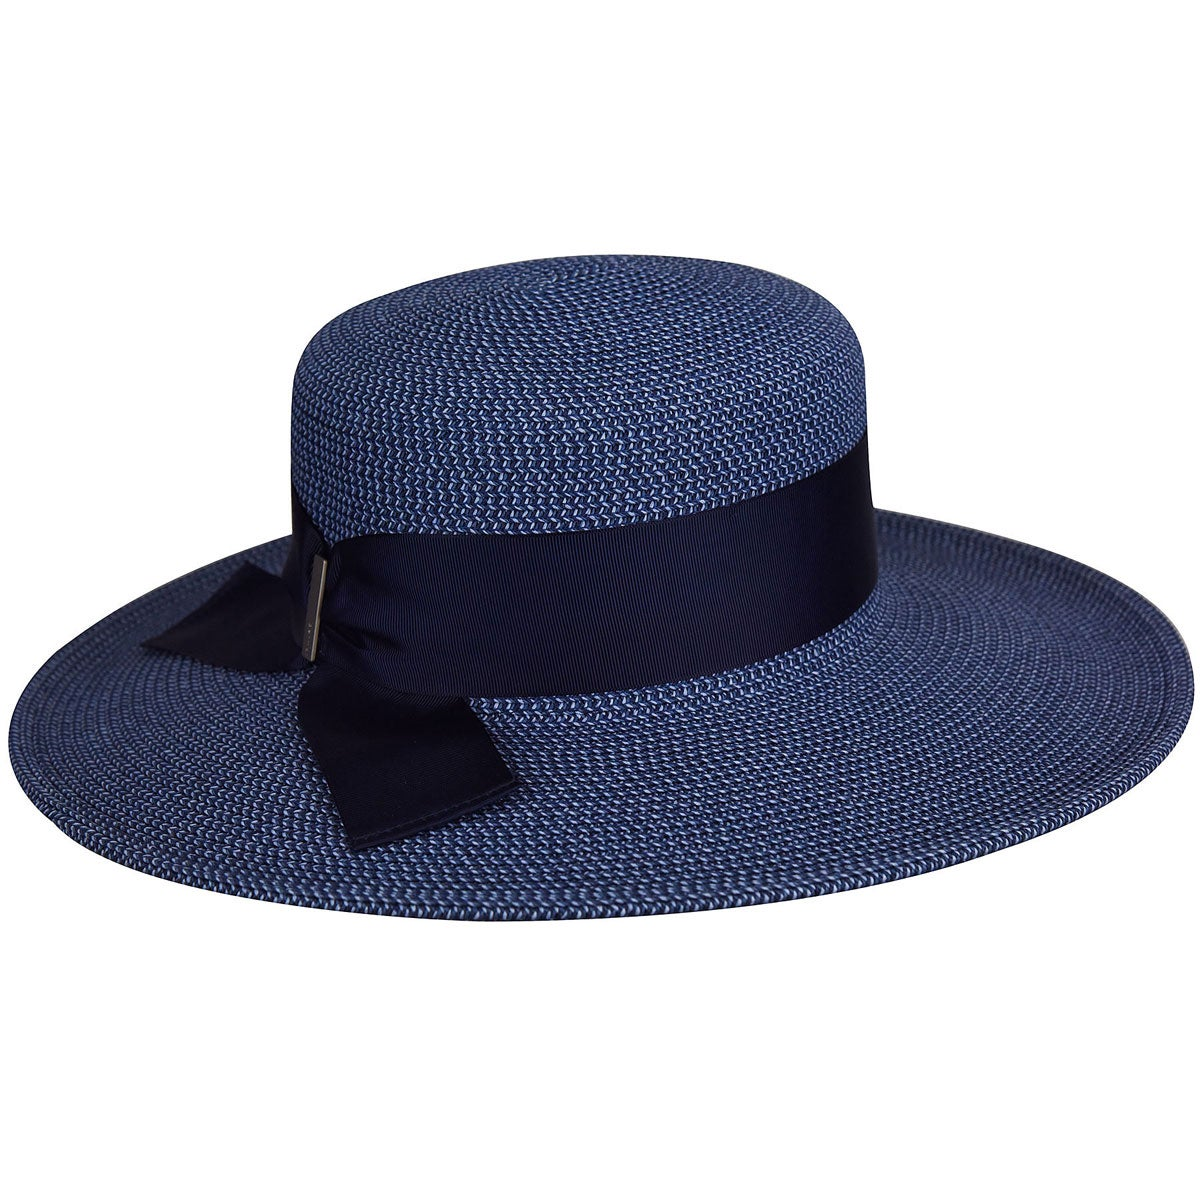 Betmar Manchester Braided Wide Brim Boater in Navy Multi